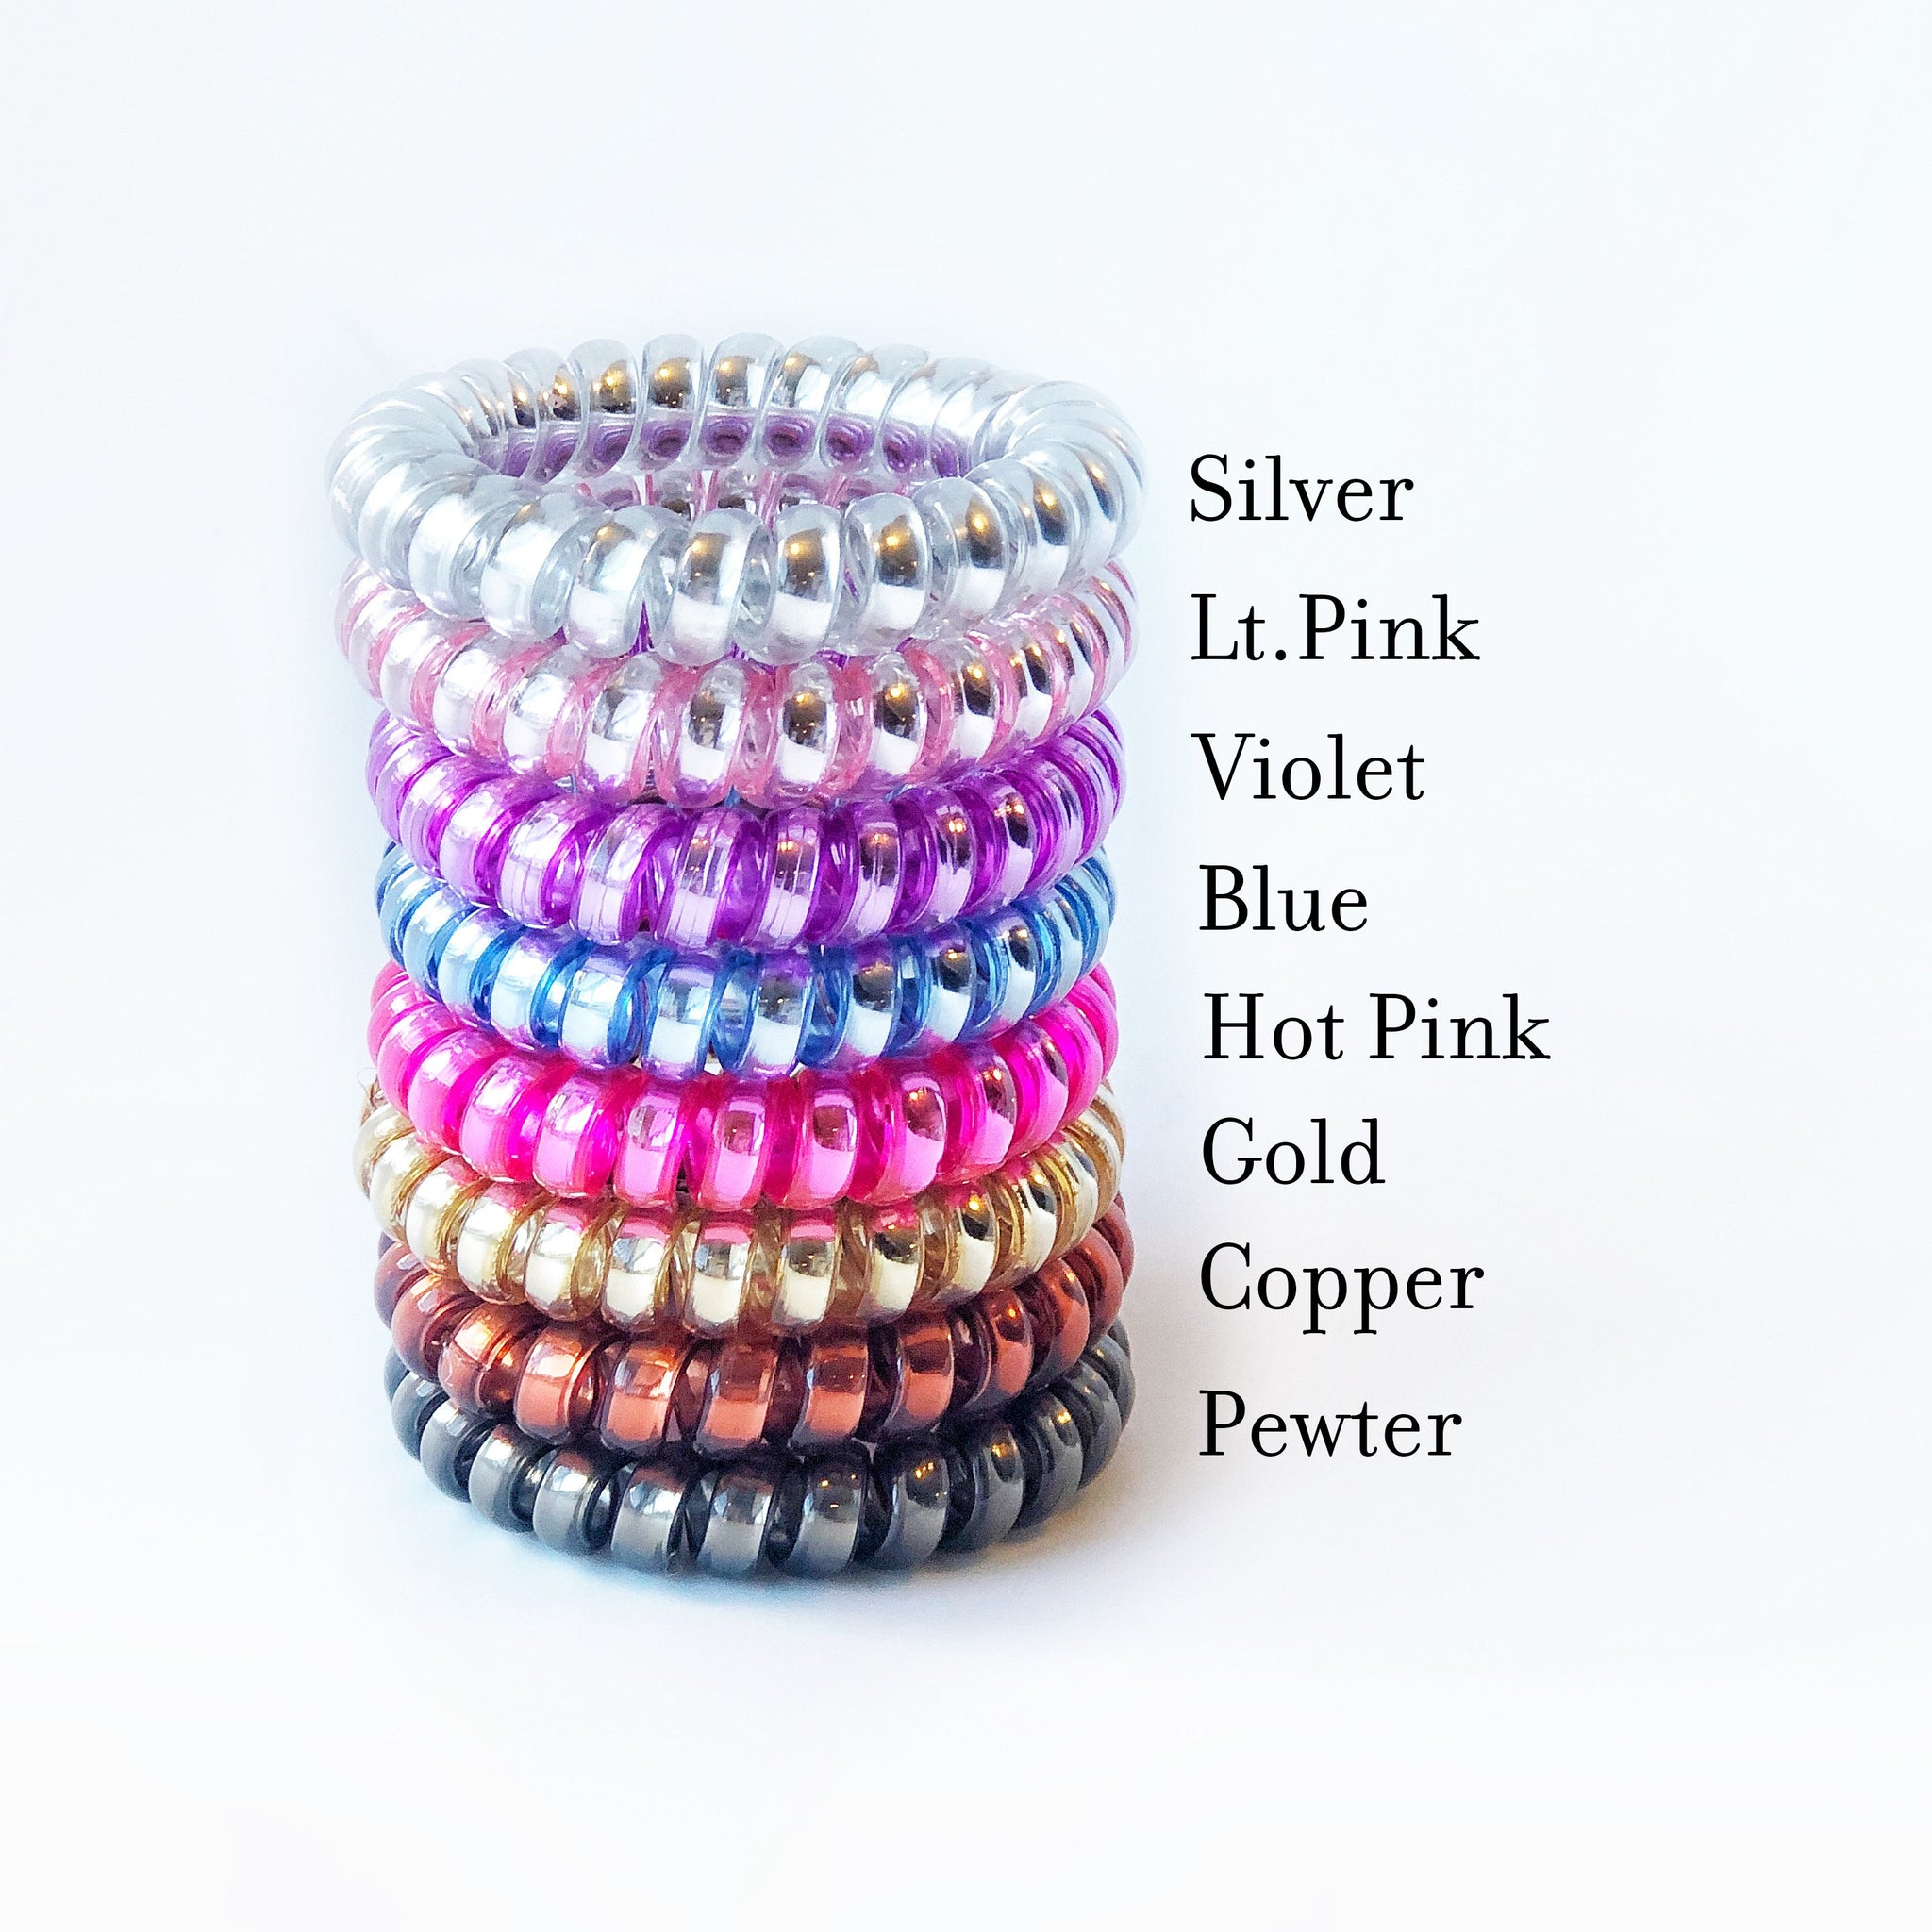 Lohri Celebration Favor, Spiral Hair Ties, Lohri Party Supplies - @PlumPolkaDot